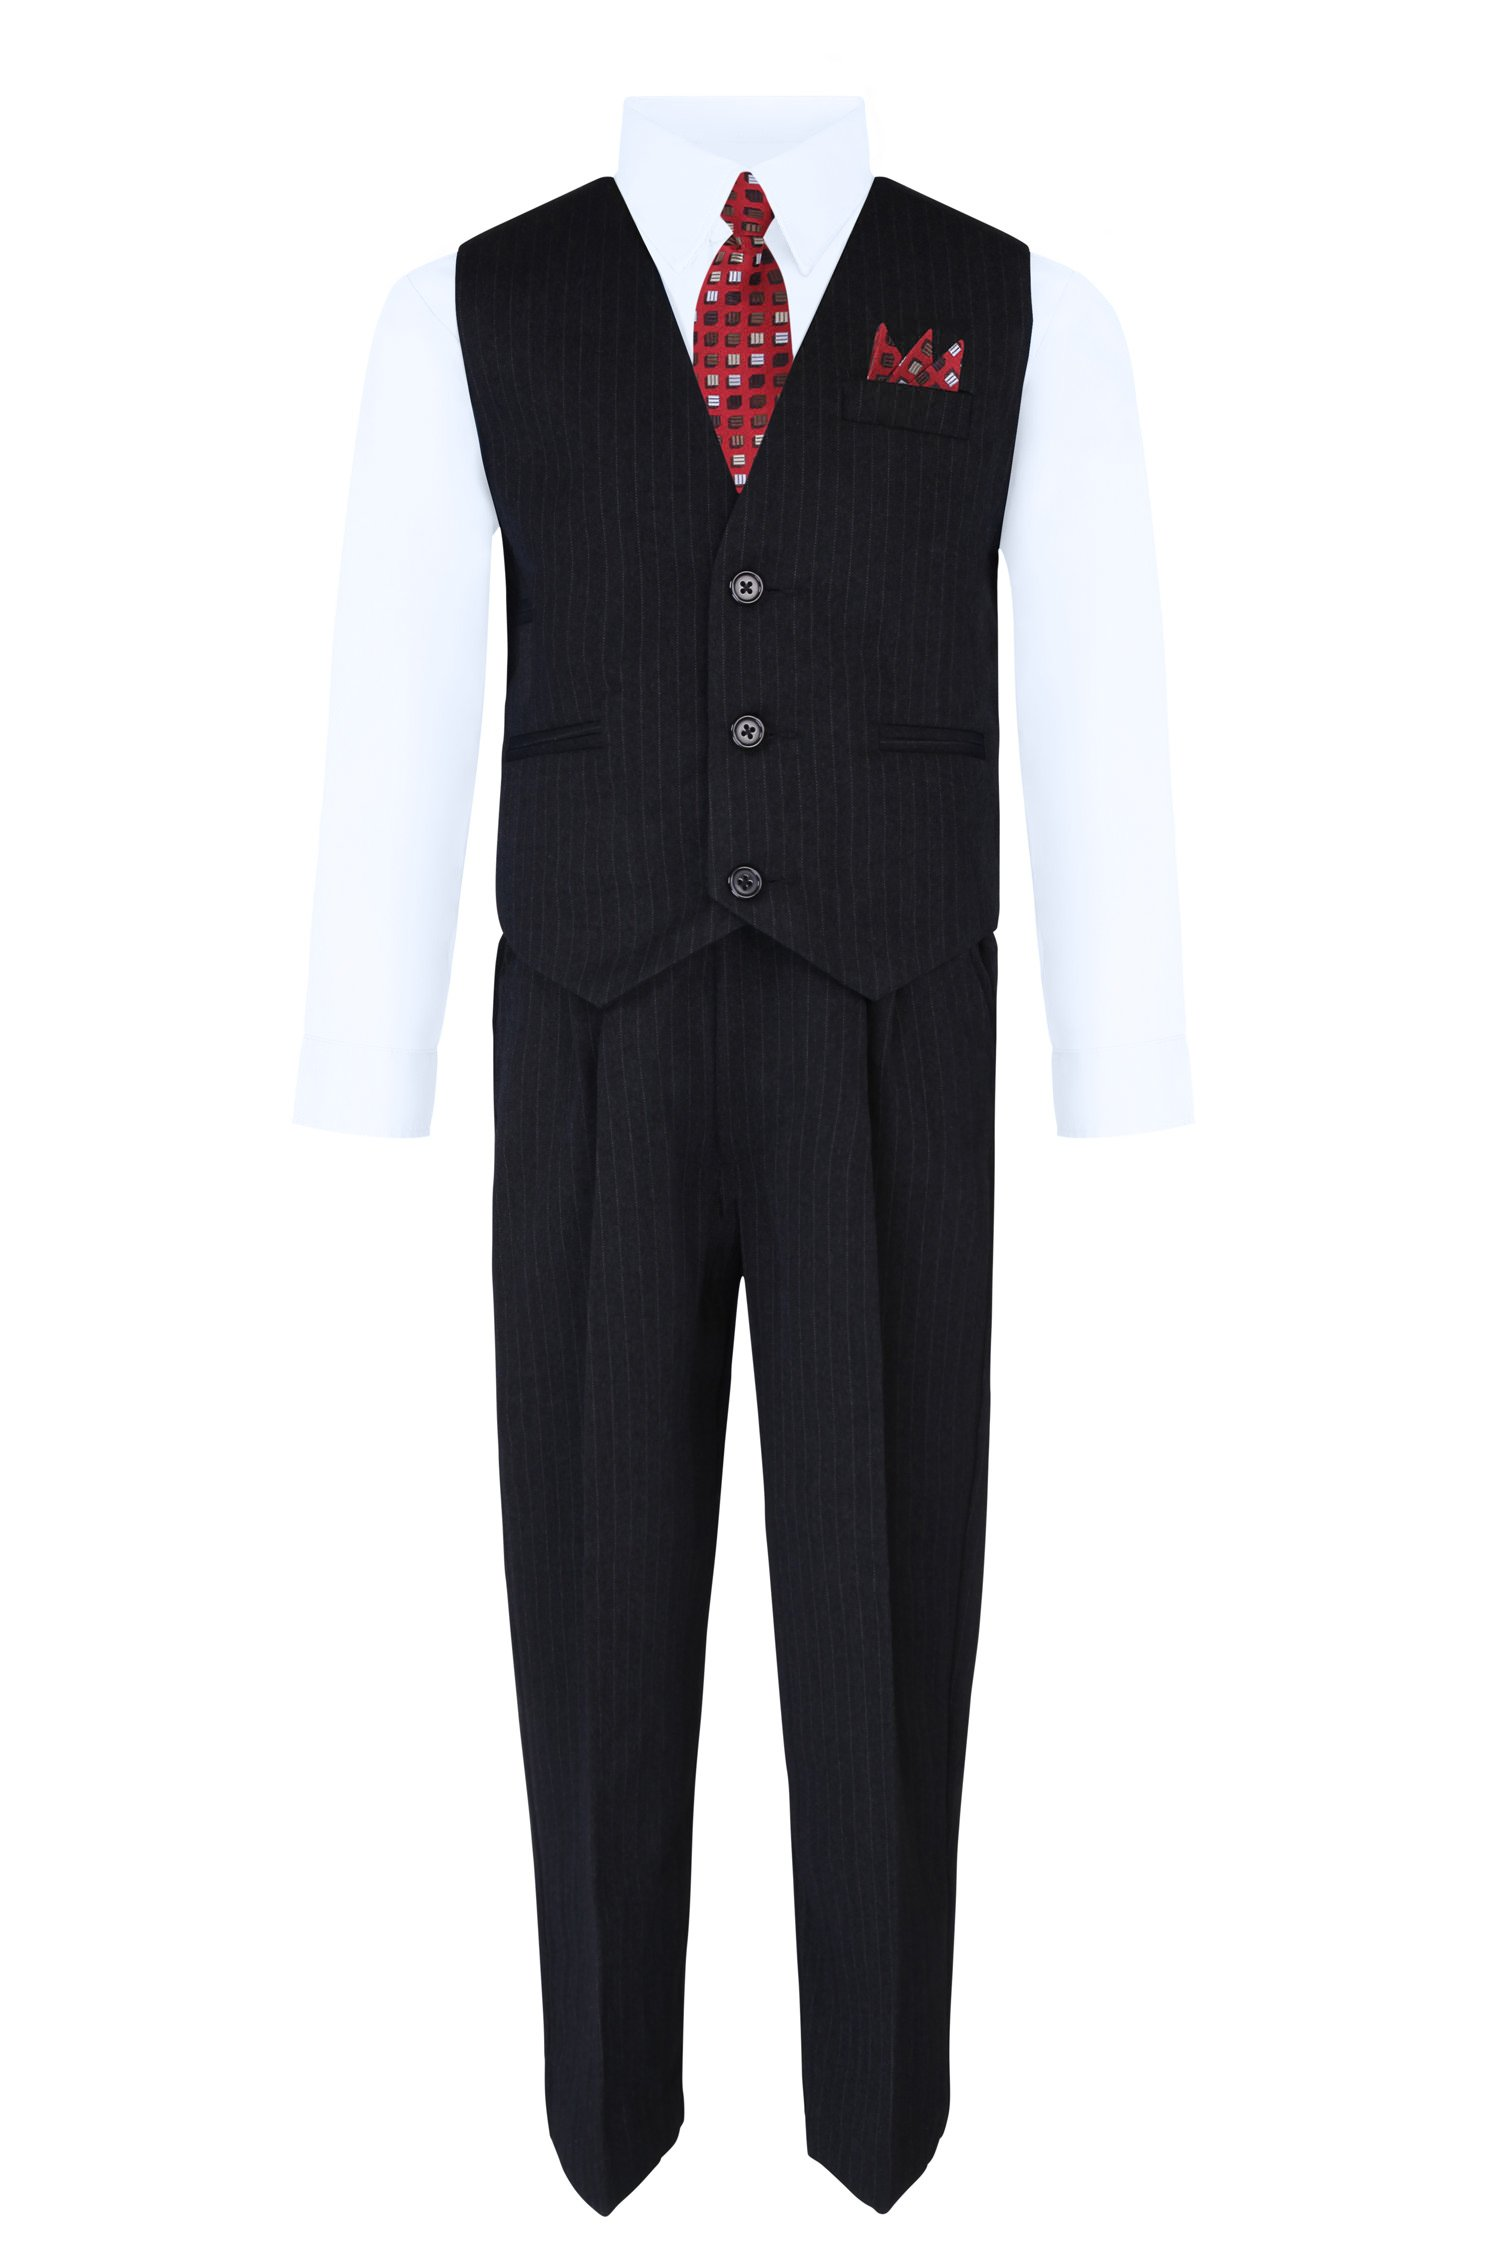 S.H. Churchill & Co. Boy's Vest and Pant Set, Includes Shirt, Tie and Hanky -  Black/White, 8